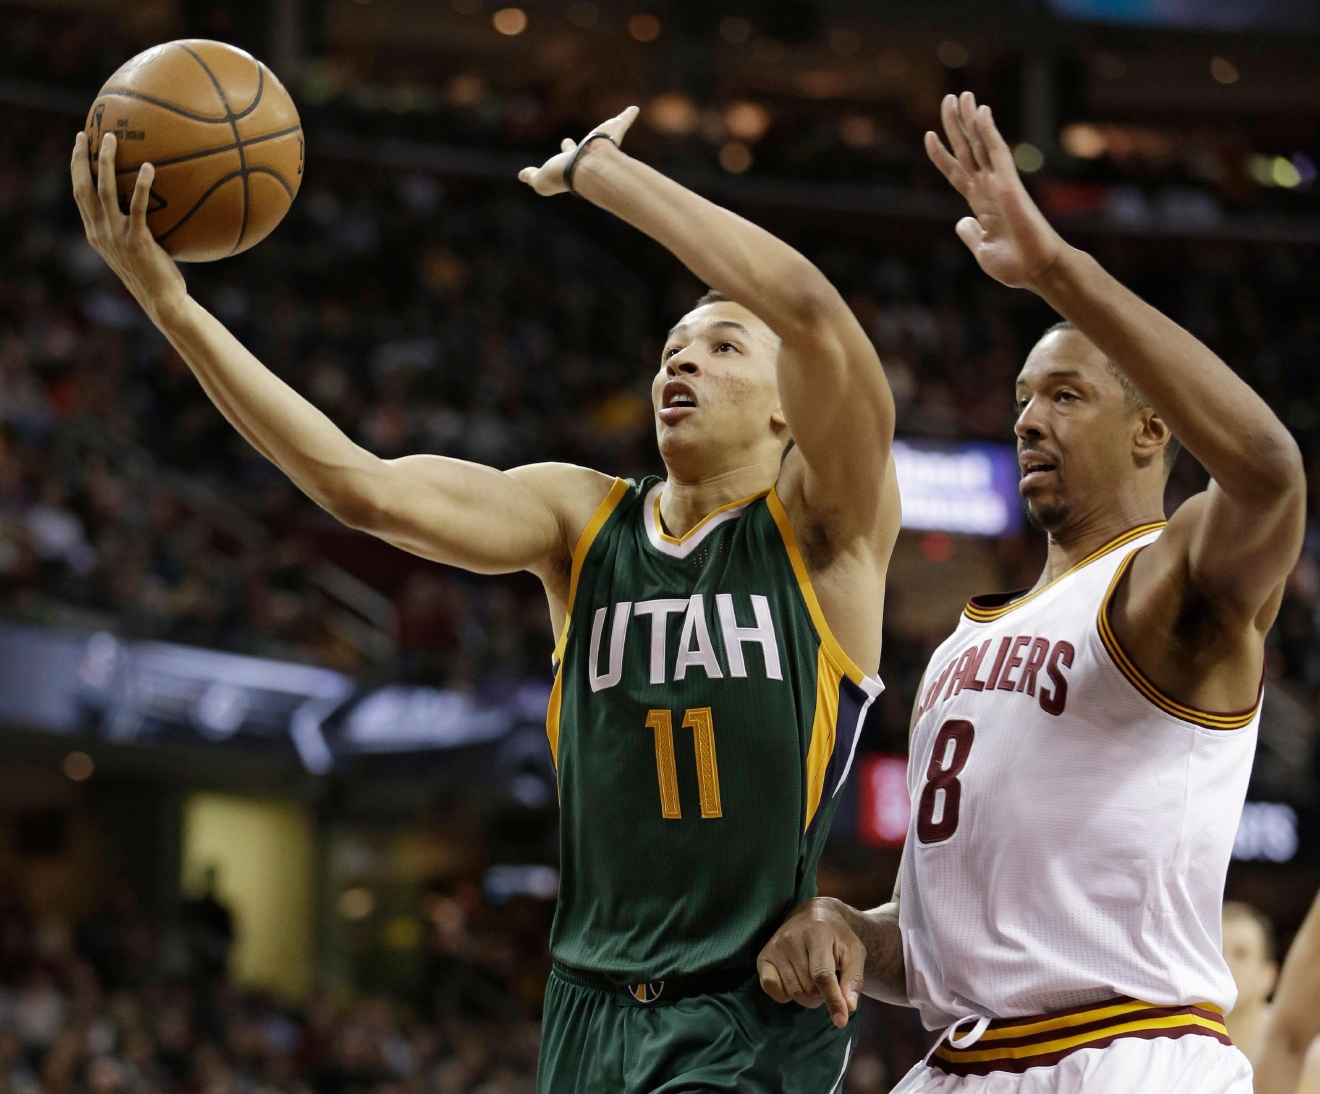 Utah Jazz's Dante Exum (11) drives against Cleveland Cavaliers' Channing Frye (8) in the first half of an NBA basketball game, Thursday, March 16, 2017, in Cleveland. (AP Photo/Tony Dejak)